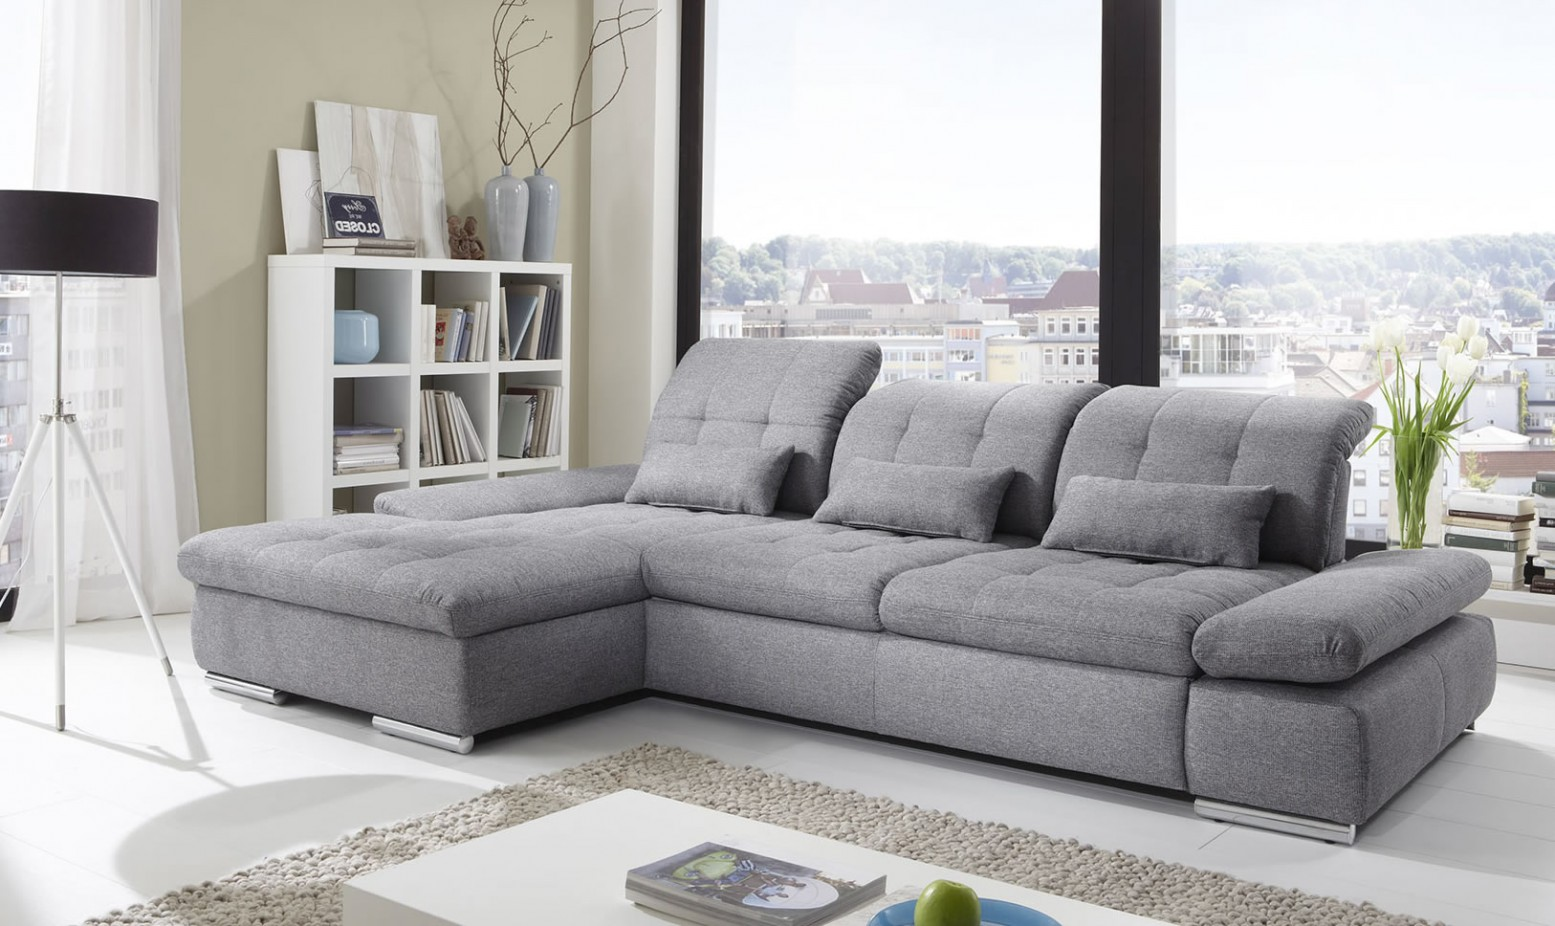 Alpine Sectional Sleeper Sofa, Left Arm Chaise Facing, Black & White Fabric  for